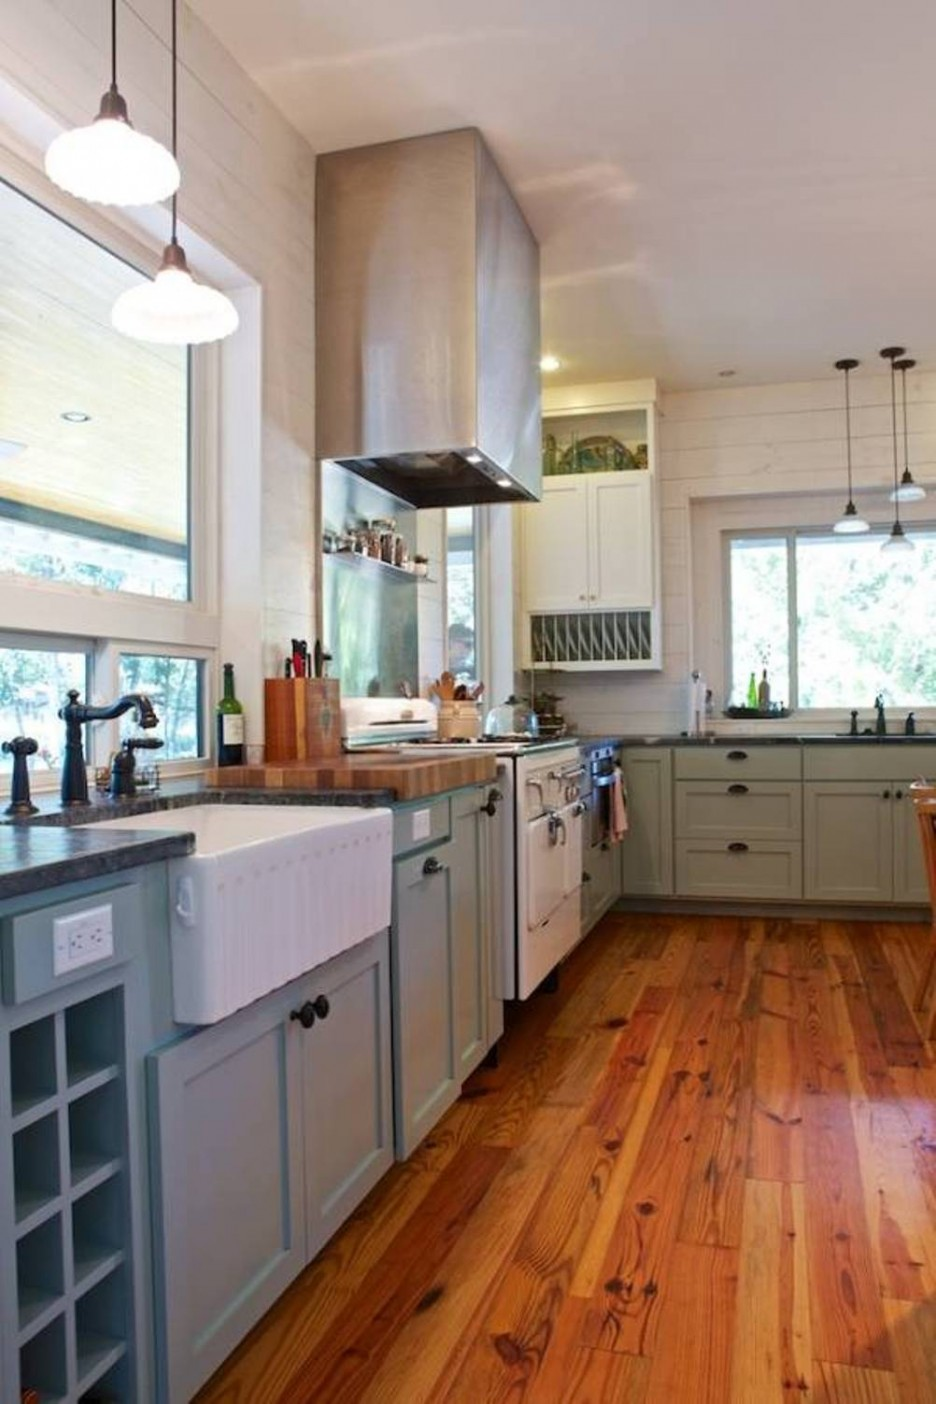 prodigious Country Farmhouse Kitchen Designs Part - 15: Hardwood floor kitchen style